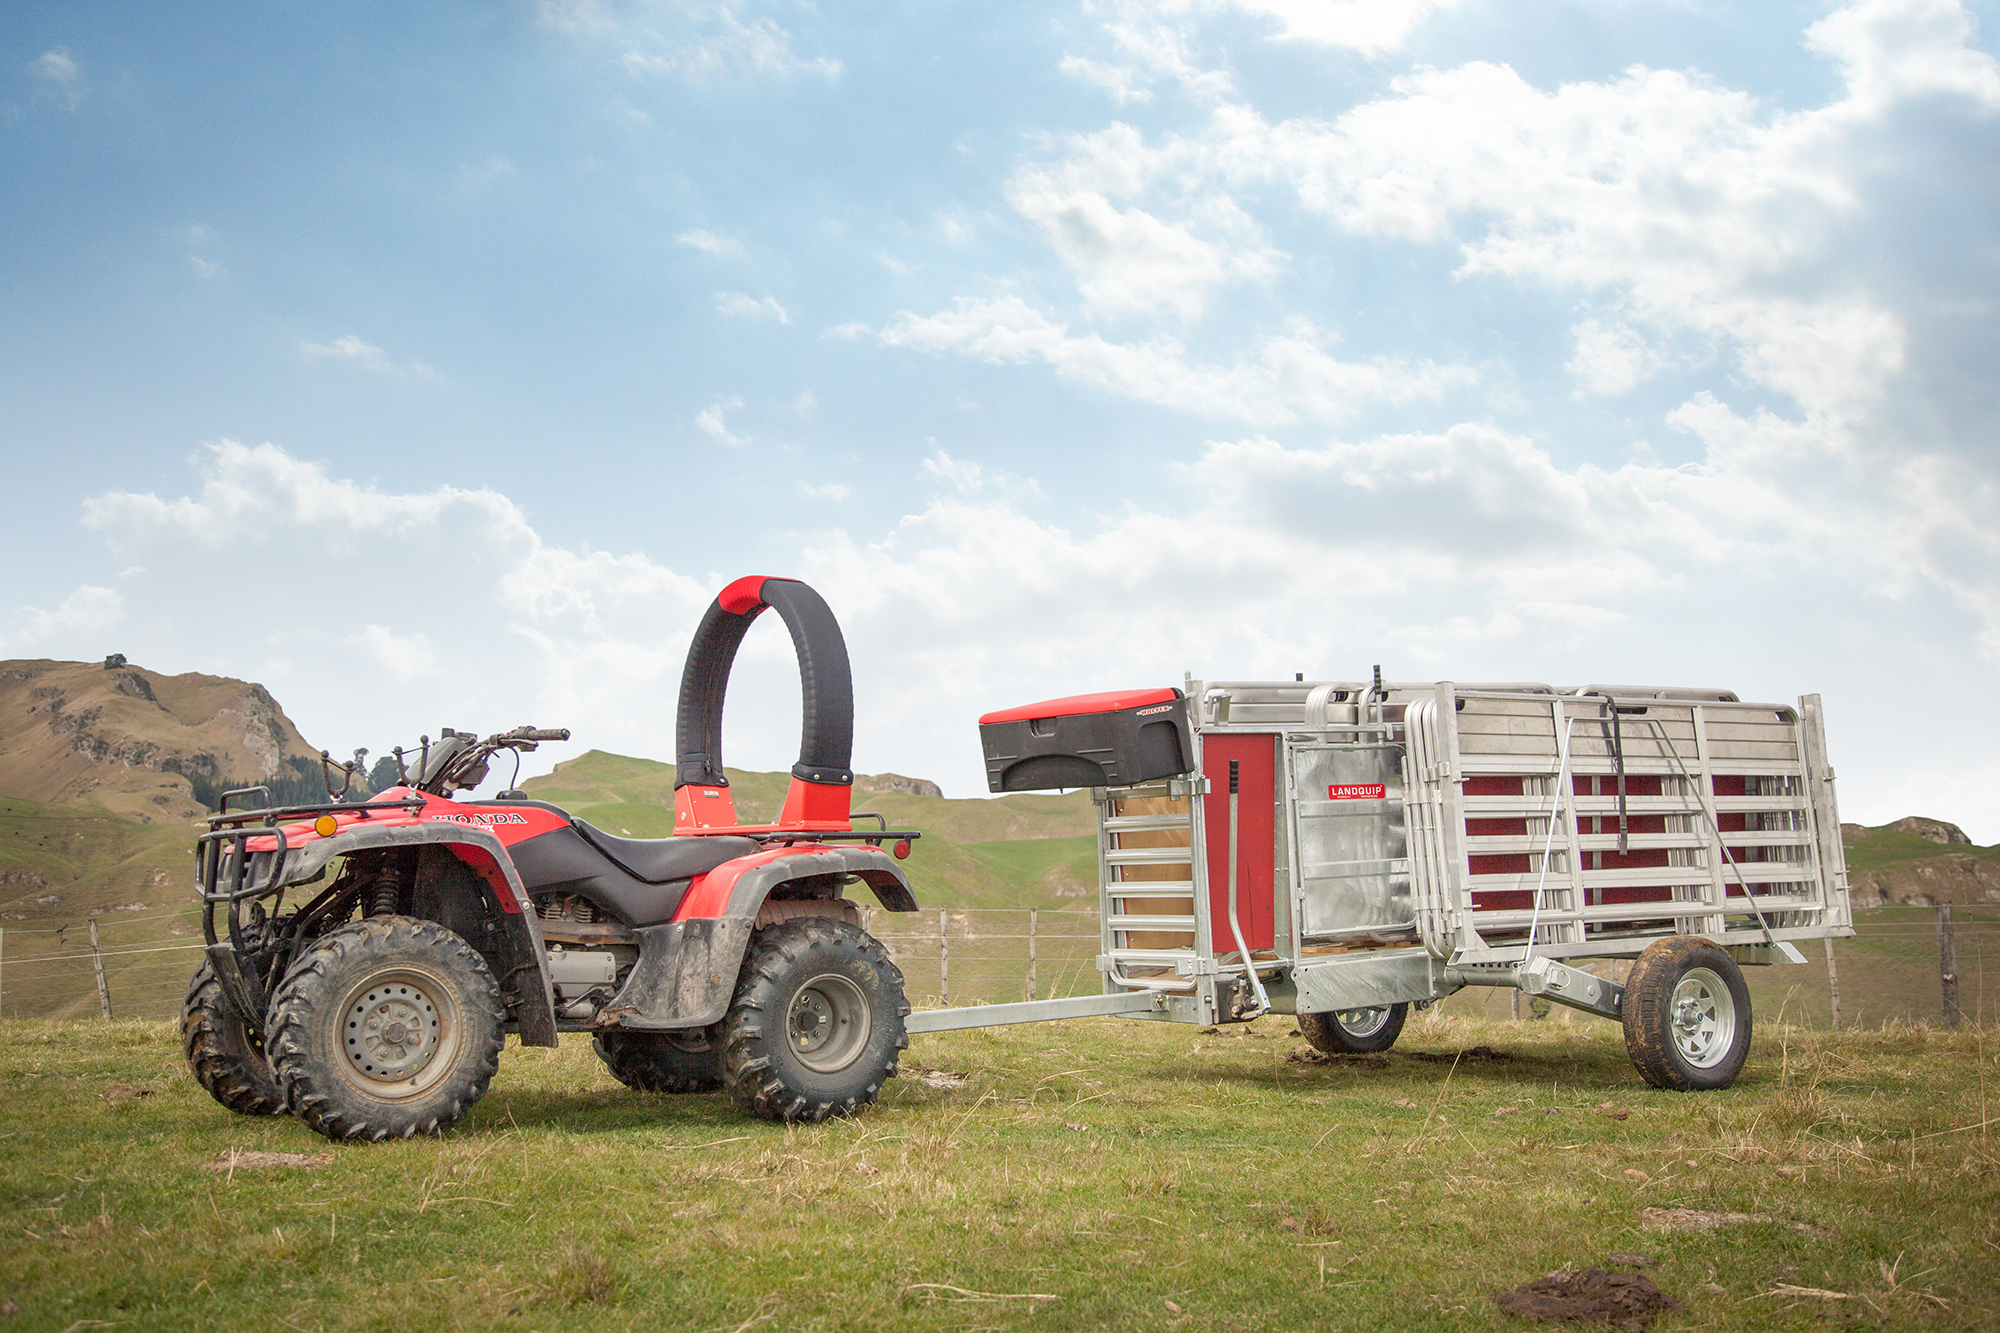 Sheep Handling Equipment - UK producers now have access to Porta-Yards mobile sheep handling systems from Landquip NZ. Quality materials and functional design have made Porta-Yards a leader in New Zealand market for sheep handling equipment.View products